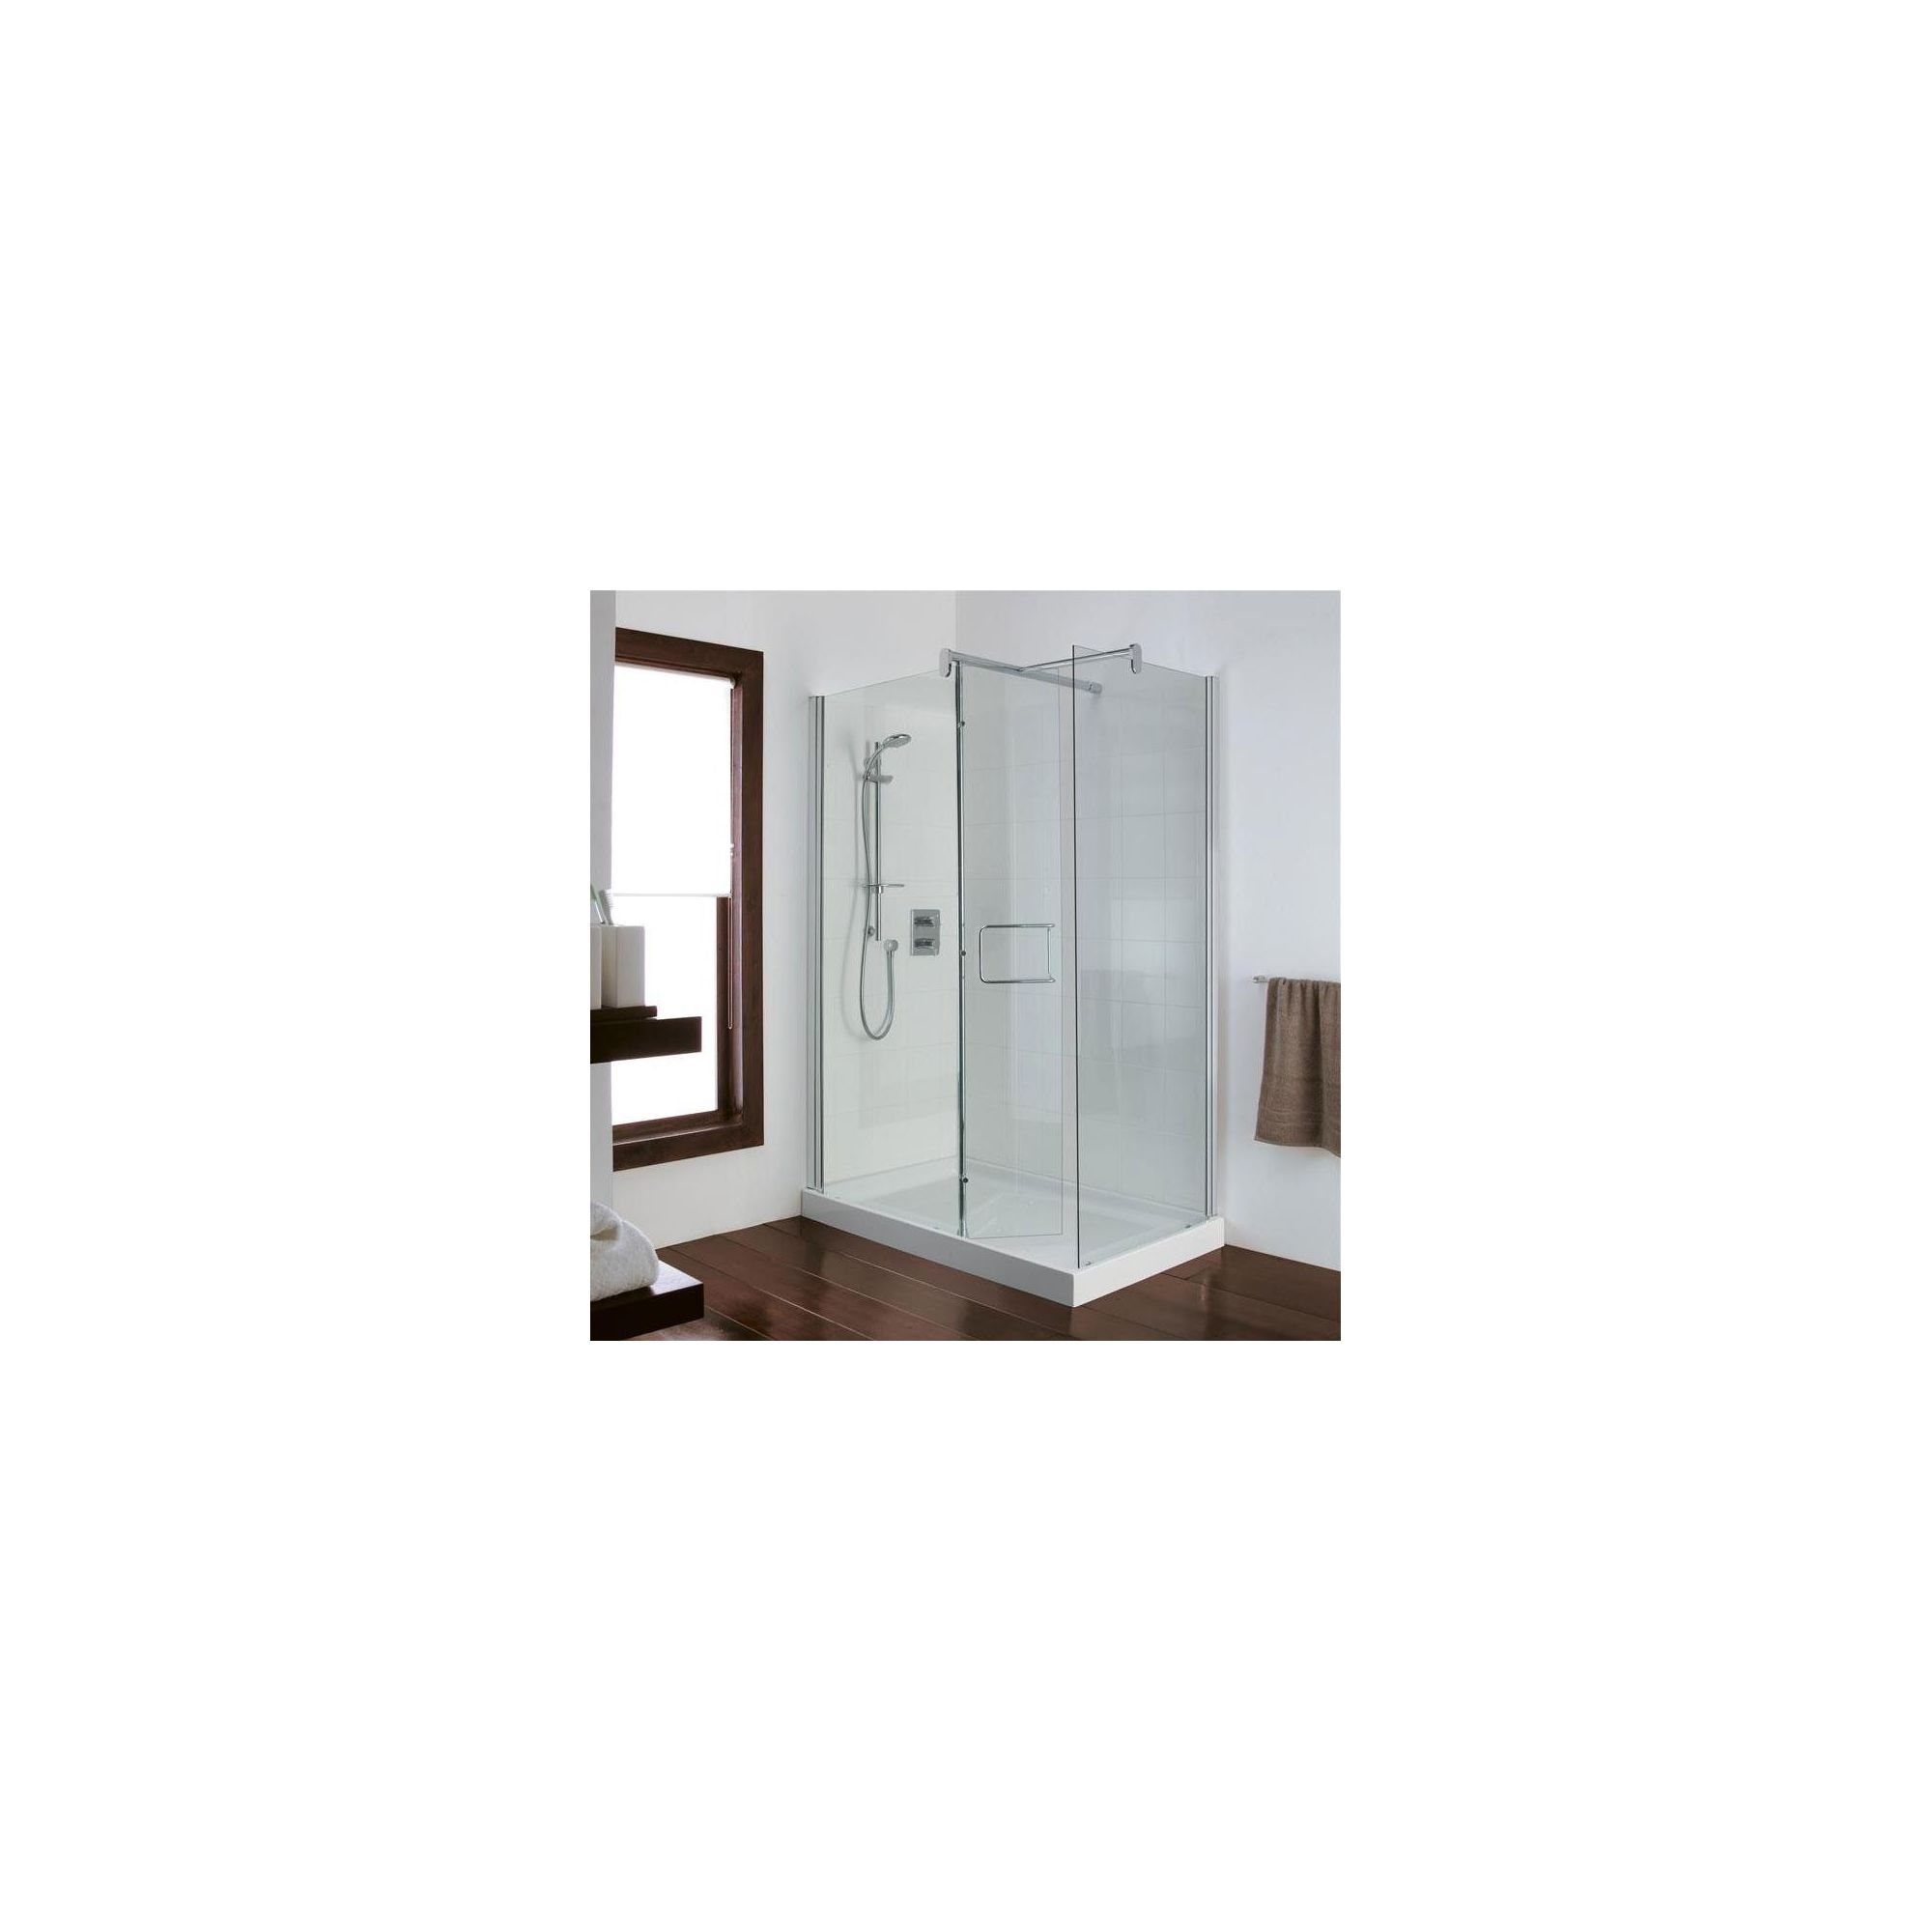 Ideal Standard Serenis Corner 90 Degree Shower Enclosure, excluding Fittings, 1400mm x 900mm, Low Profile Tray, Left Handed at Tesco Direct